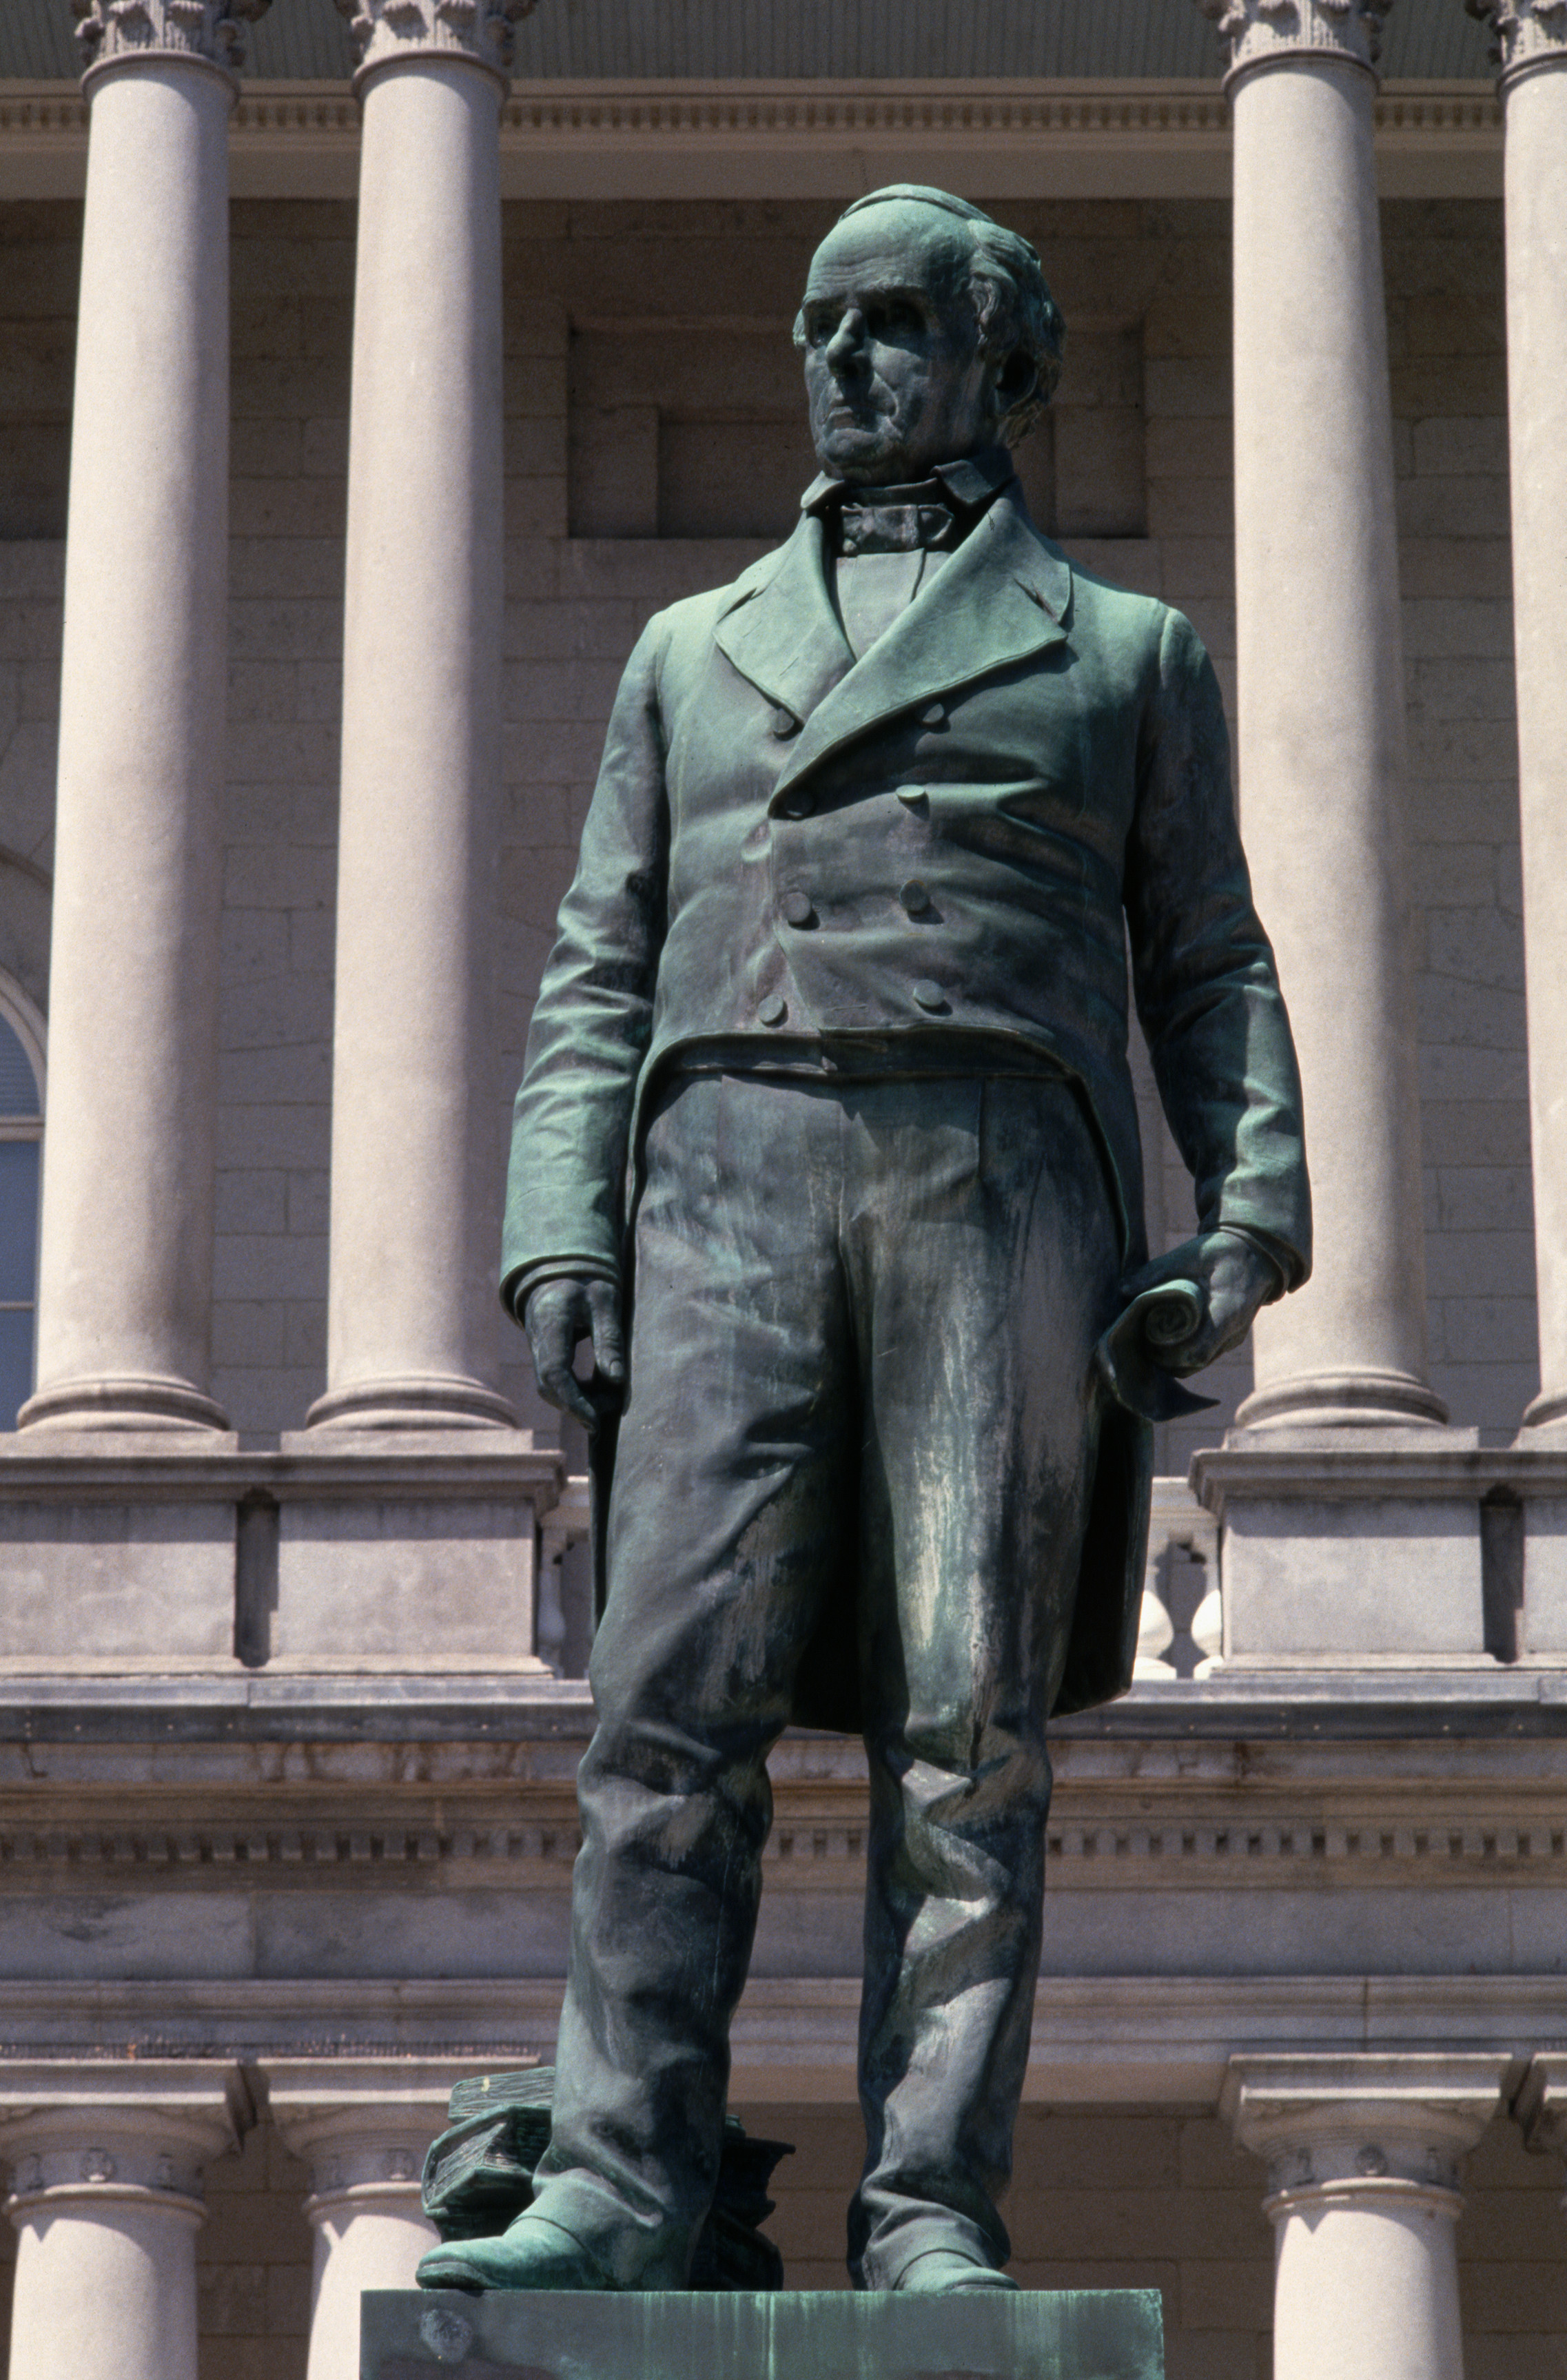 A statue of politician and orator Daniel Webster stands in front of the State House in Concord, New Hampshire.